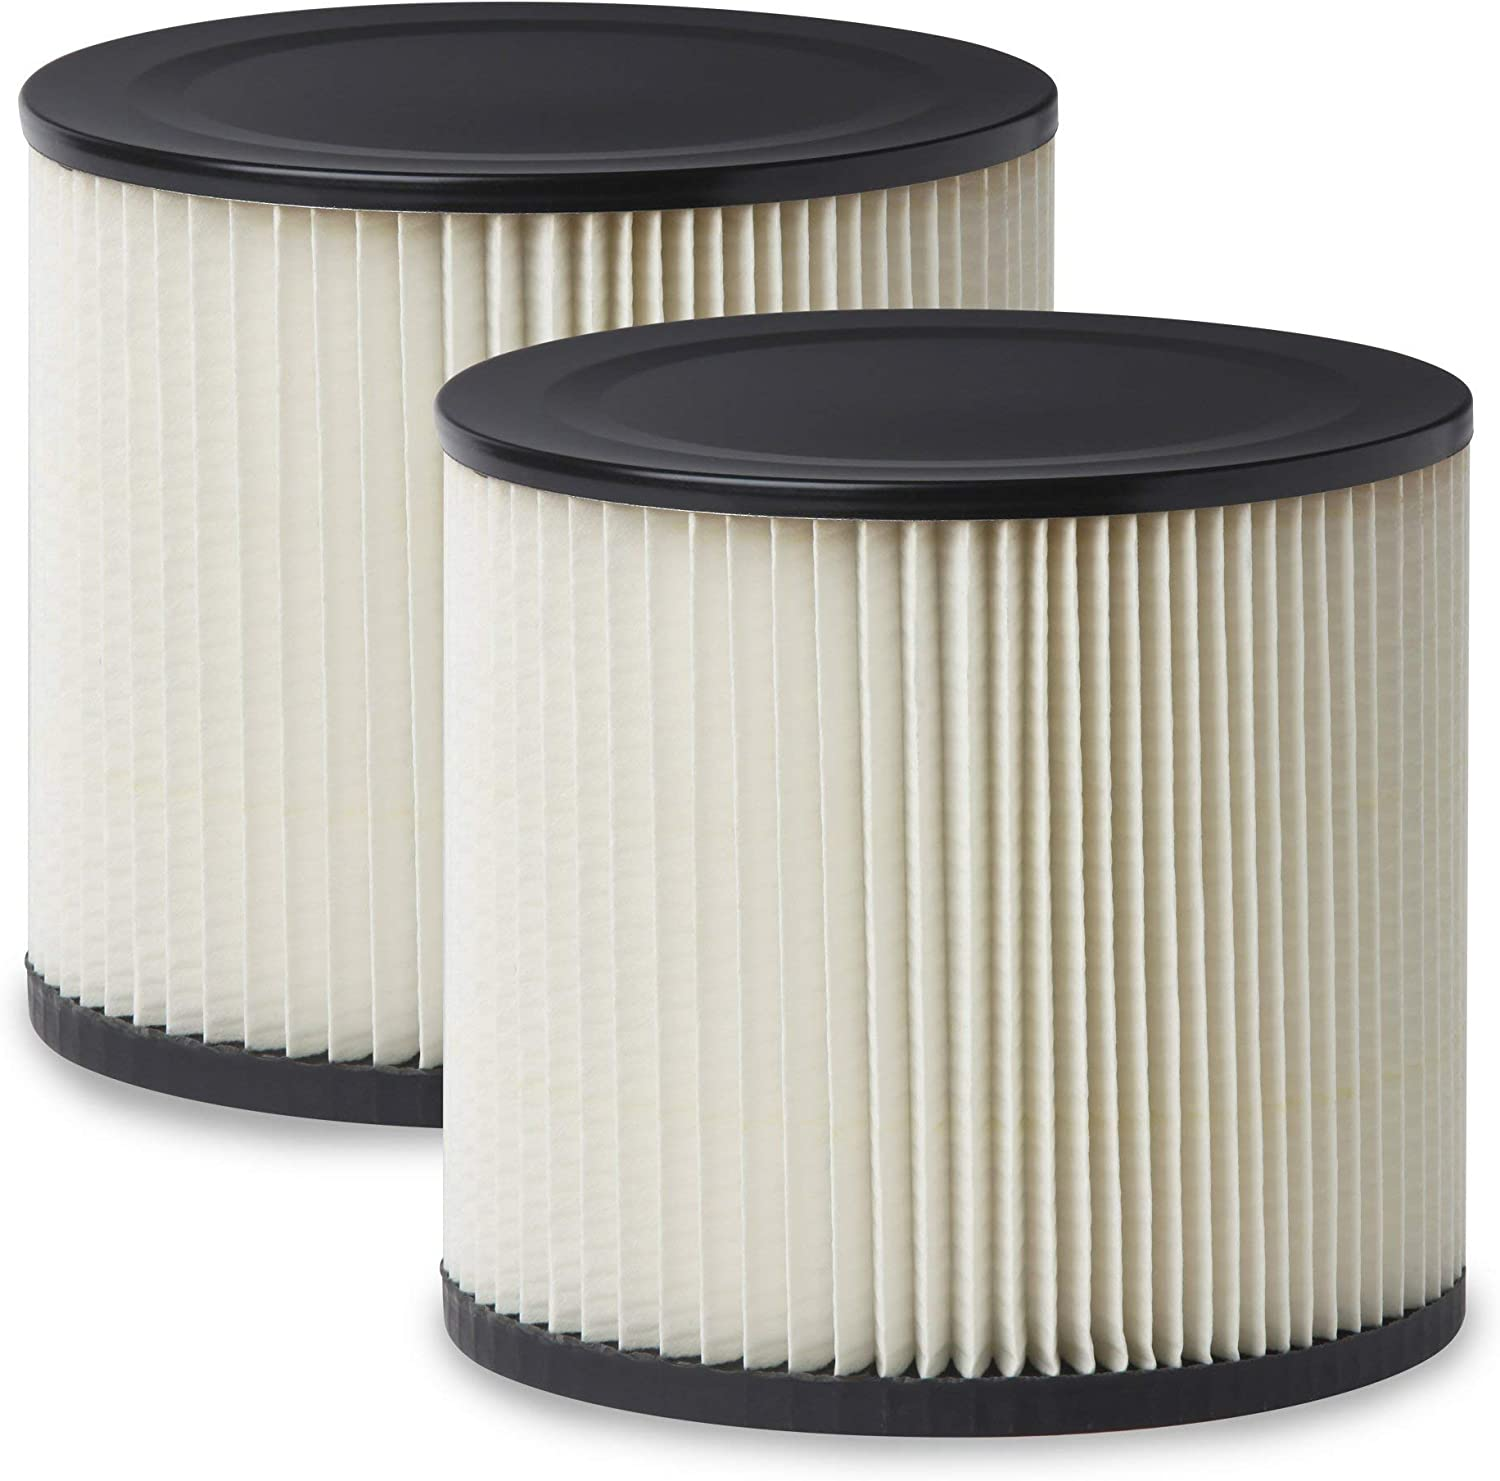 Multi-Fit Wet Dry Vac Filters VF2007TP Standard Wet Dry Vacuum Filters (2 Pack - Shop Vacuum Cleaner Filters) Fits Most 5 gallon & Larger Shop-Vac, Vacmaster & Genie Shop Vacuum Cleaners (Renewed)